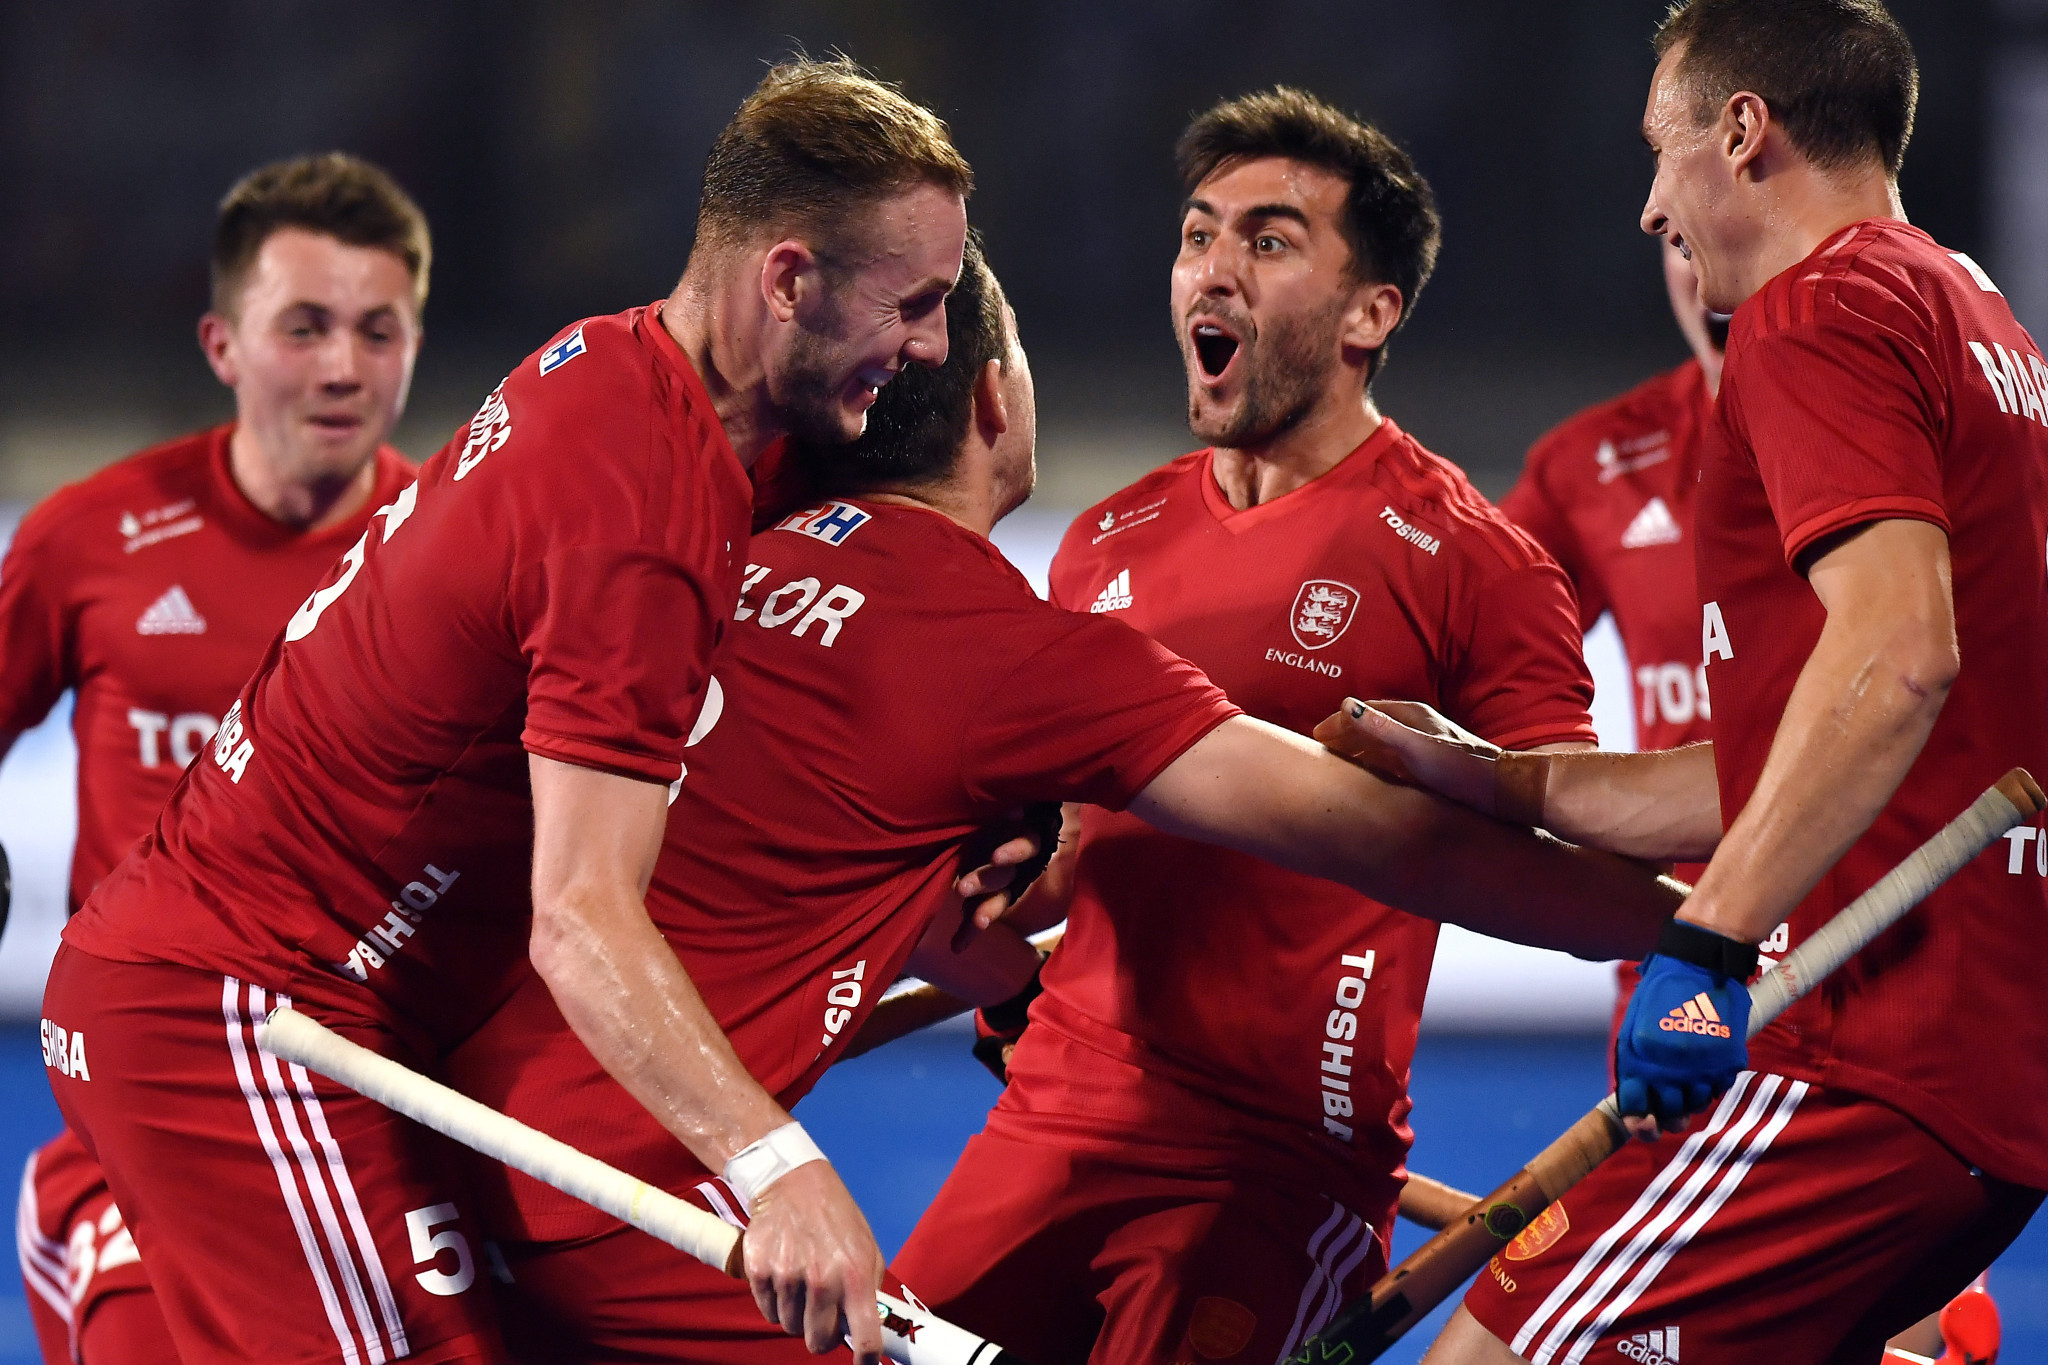 England and France advance to quarter-finals at FIH Men's Hockey World Cup